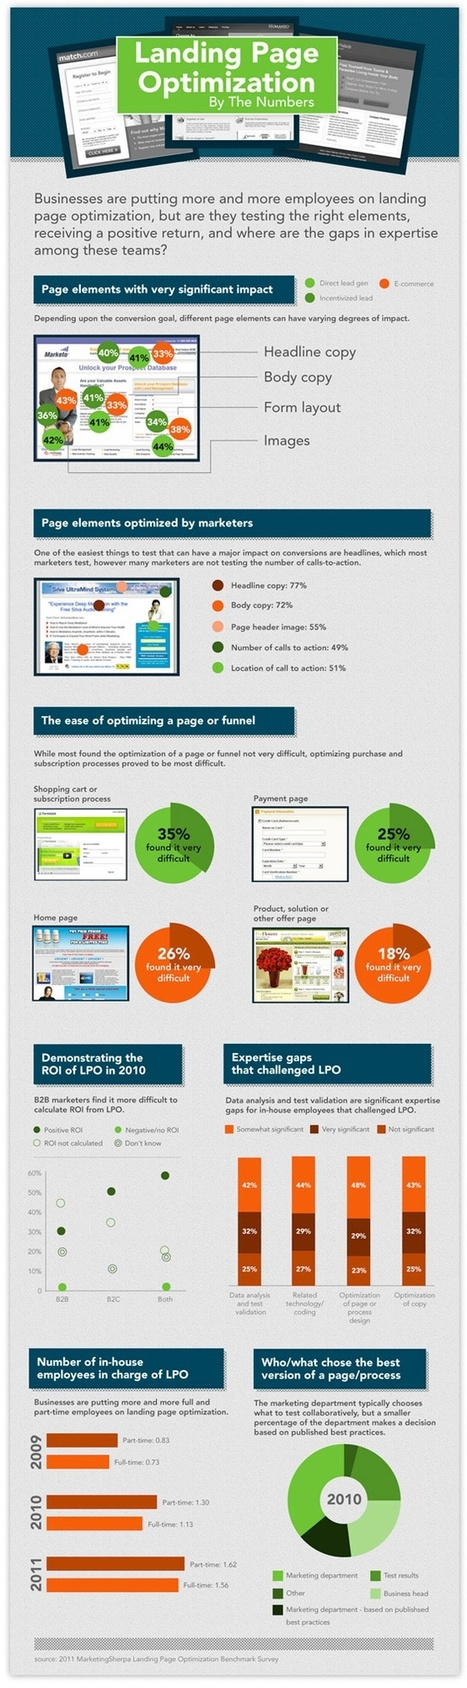 Landing Page Optimization by the Numbers [INFOGRAPHIC] | SEO, SEM & Social Media NEWS | Scoop.it